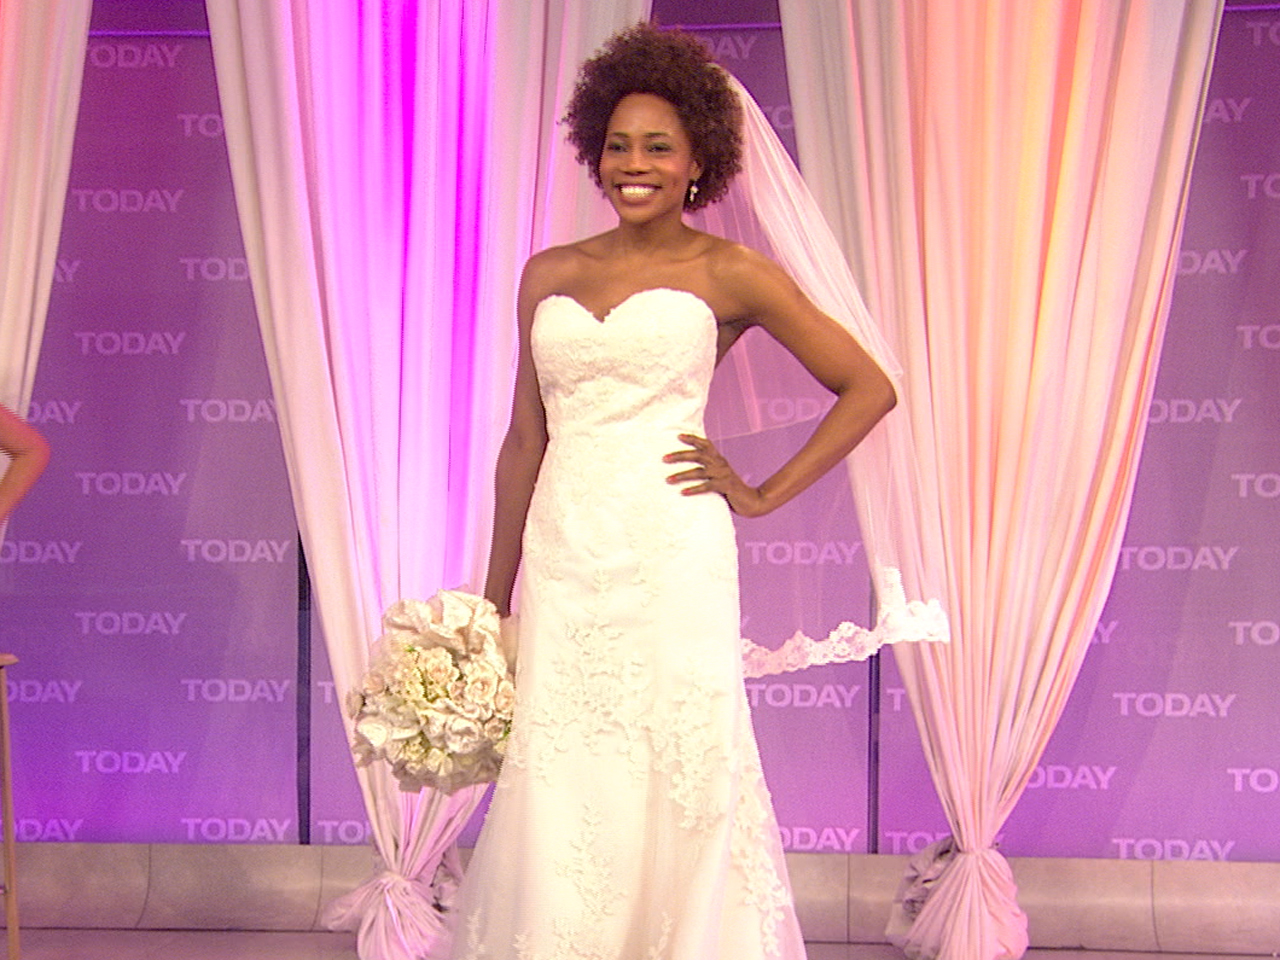 princessworthy wedding gowns for the right price